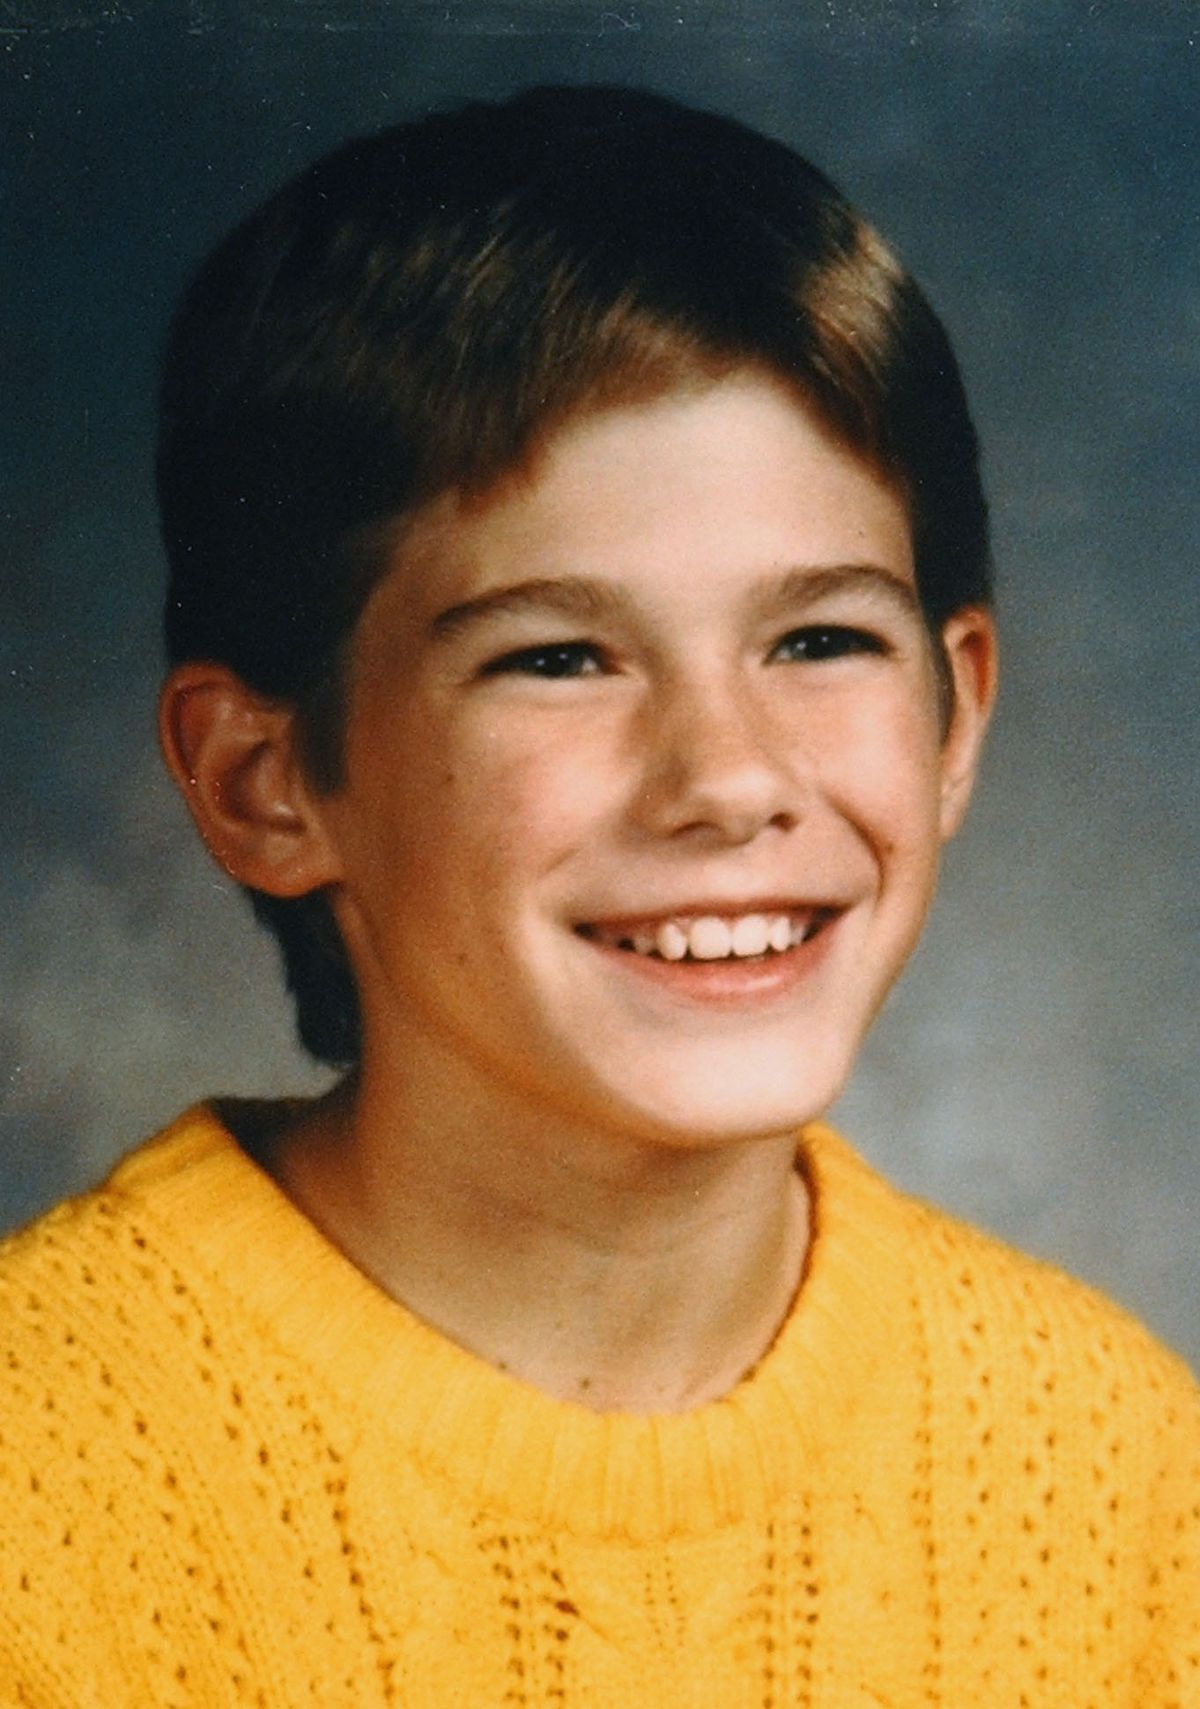 This is a 1989 family photo of Jacob Wetterling, 11, who was abducted at gunpoint near his home in St. Joseph, Minn., on Oct. 22, 1989.   AP Photo/Wetterling family